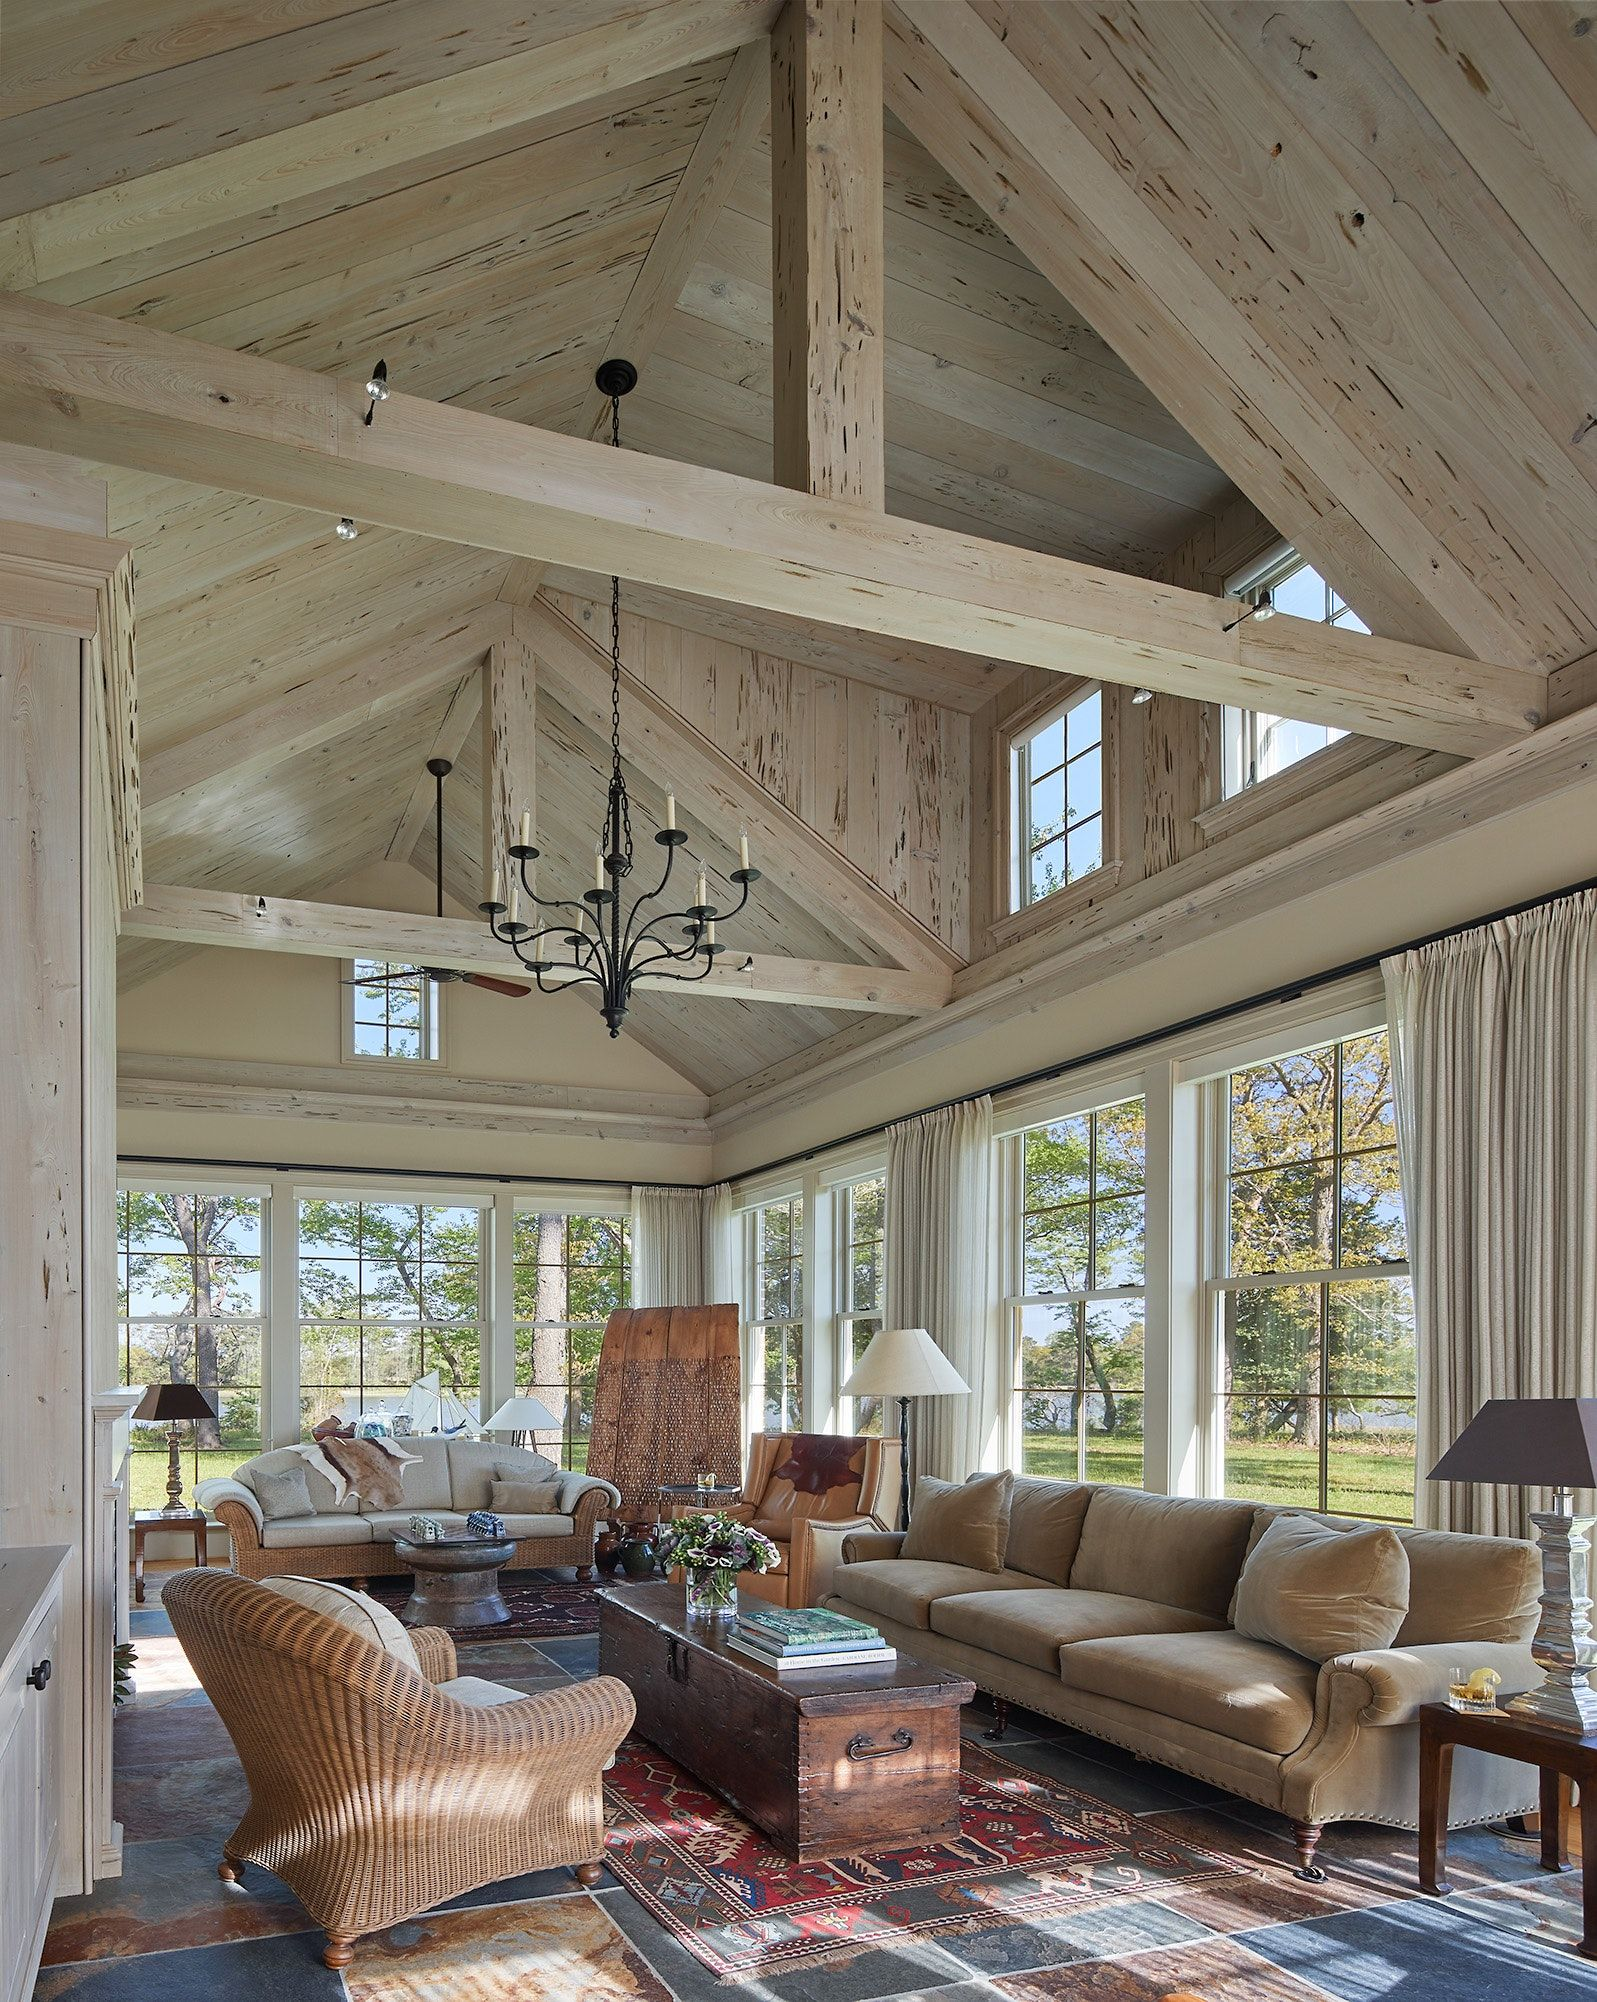 Great room at waterfront estate with beams and paneled cathedral